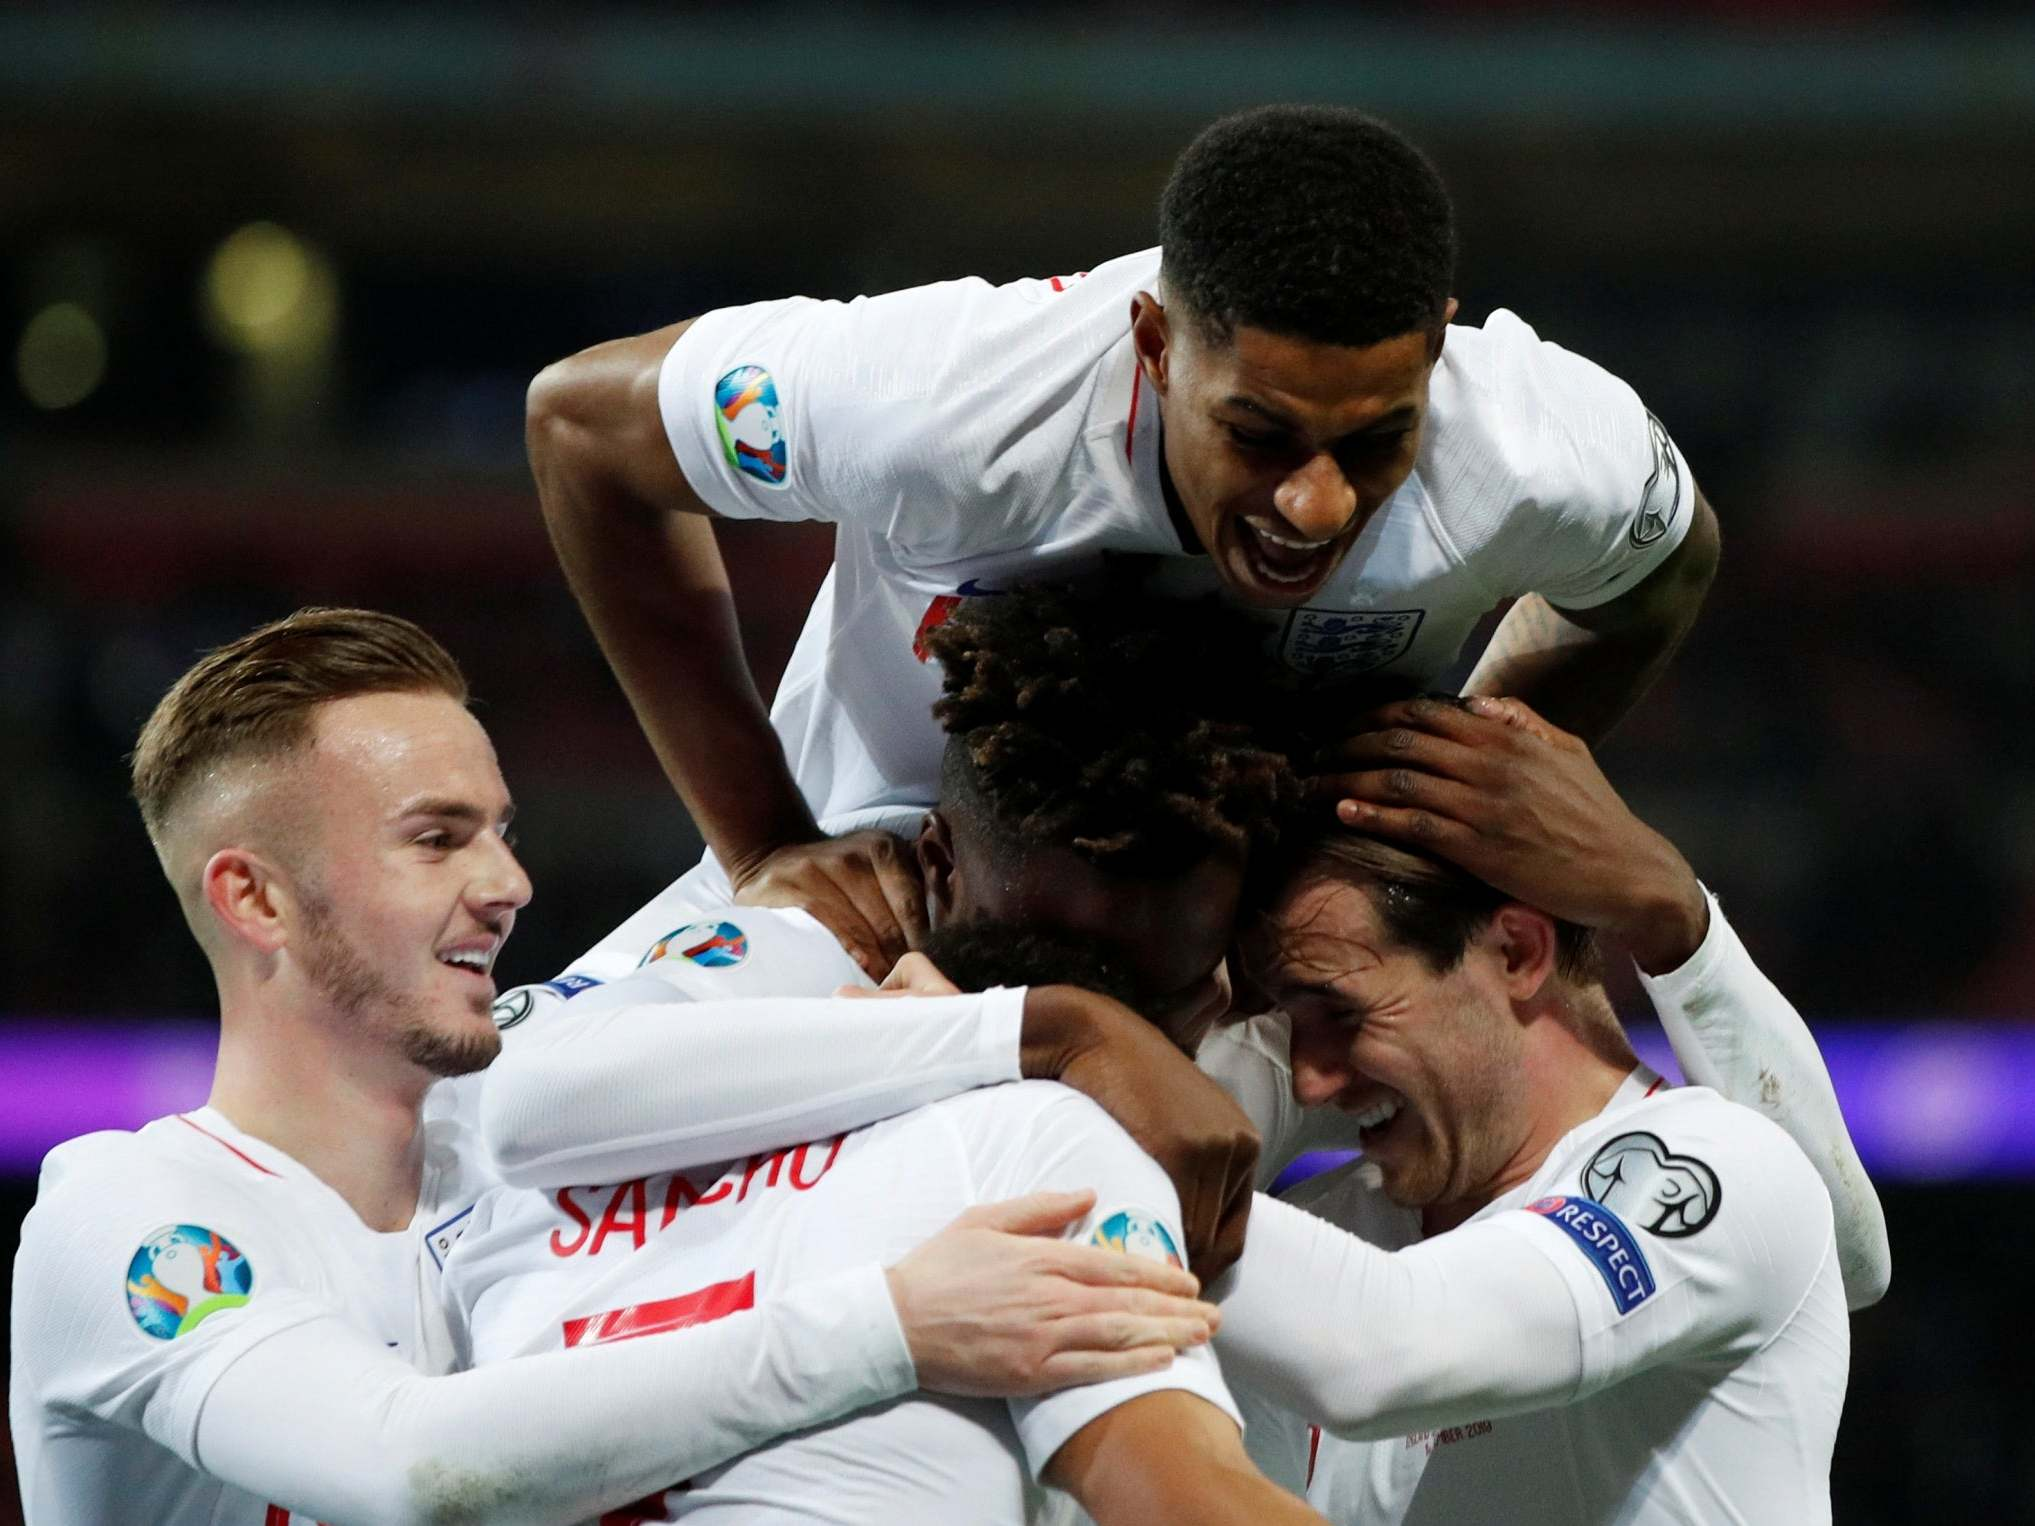 England vs Montenegro: Three Lions relish night of stat-padding to secure Euro 2020 spot unscathed